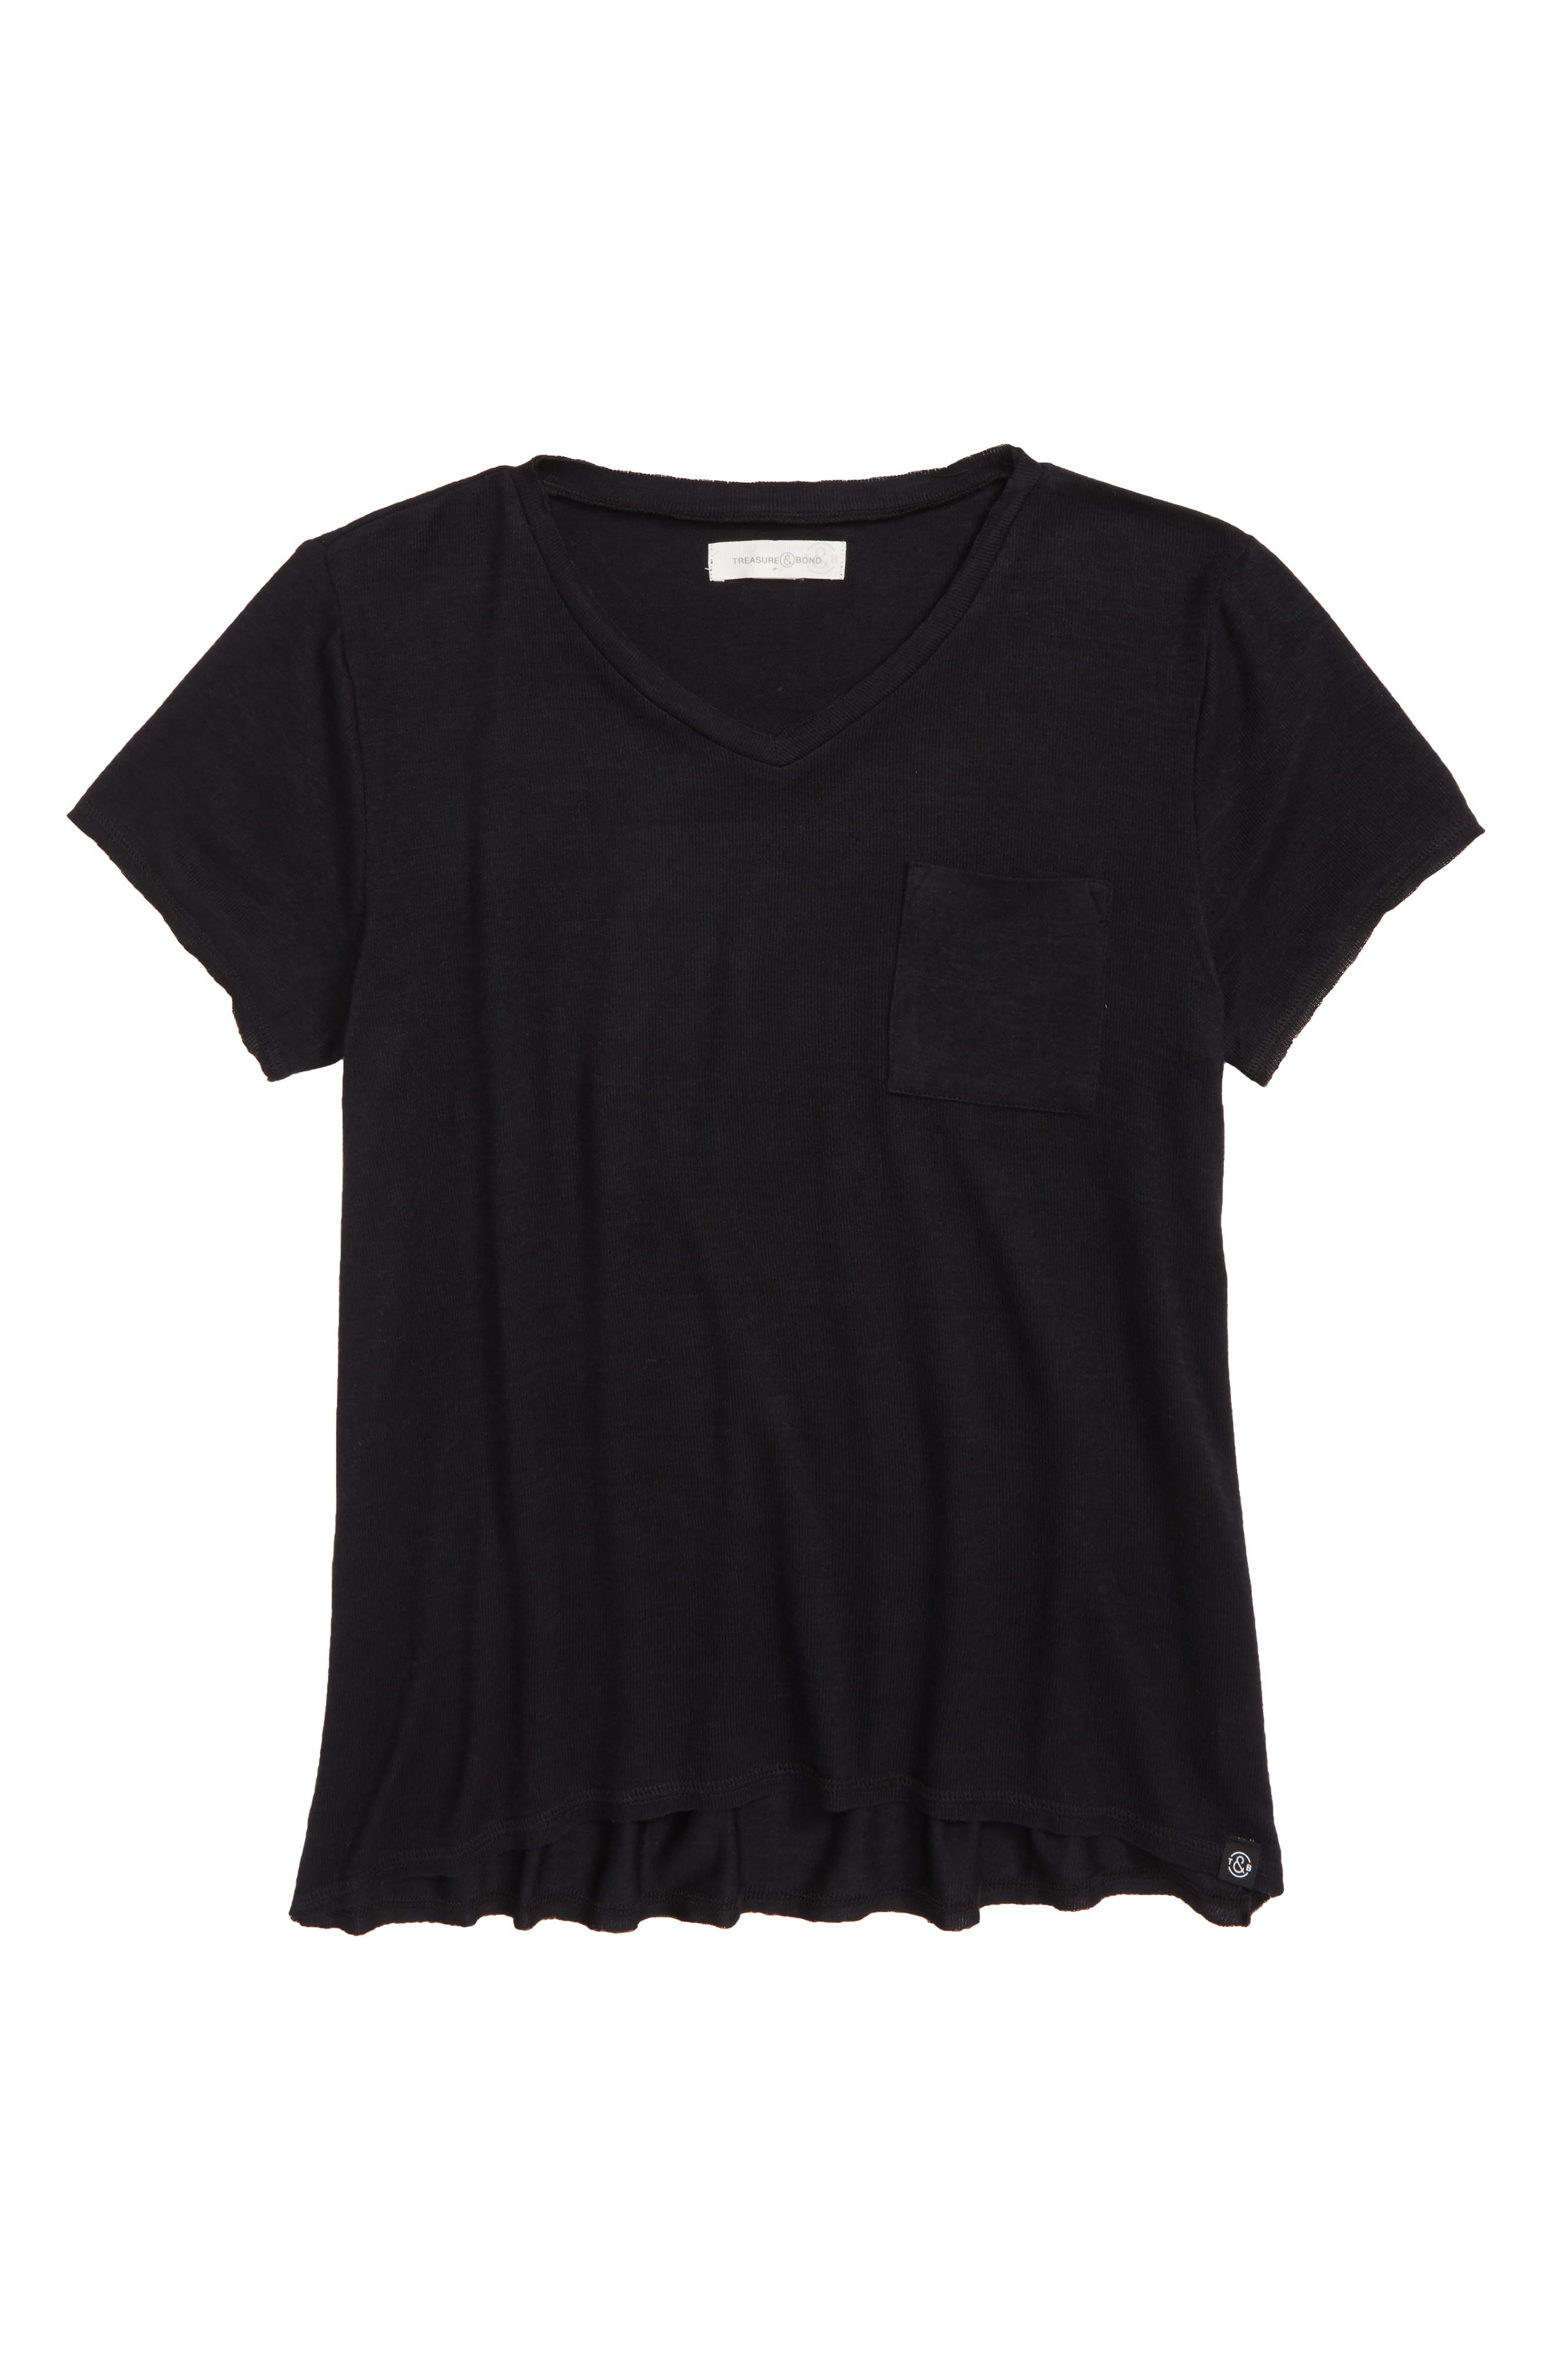 Oversized Pocket Tee,                         Main,                         color, BLACK ROCK